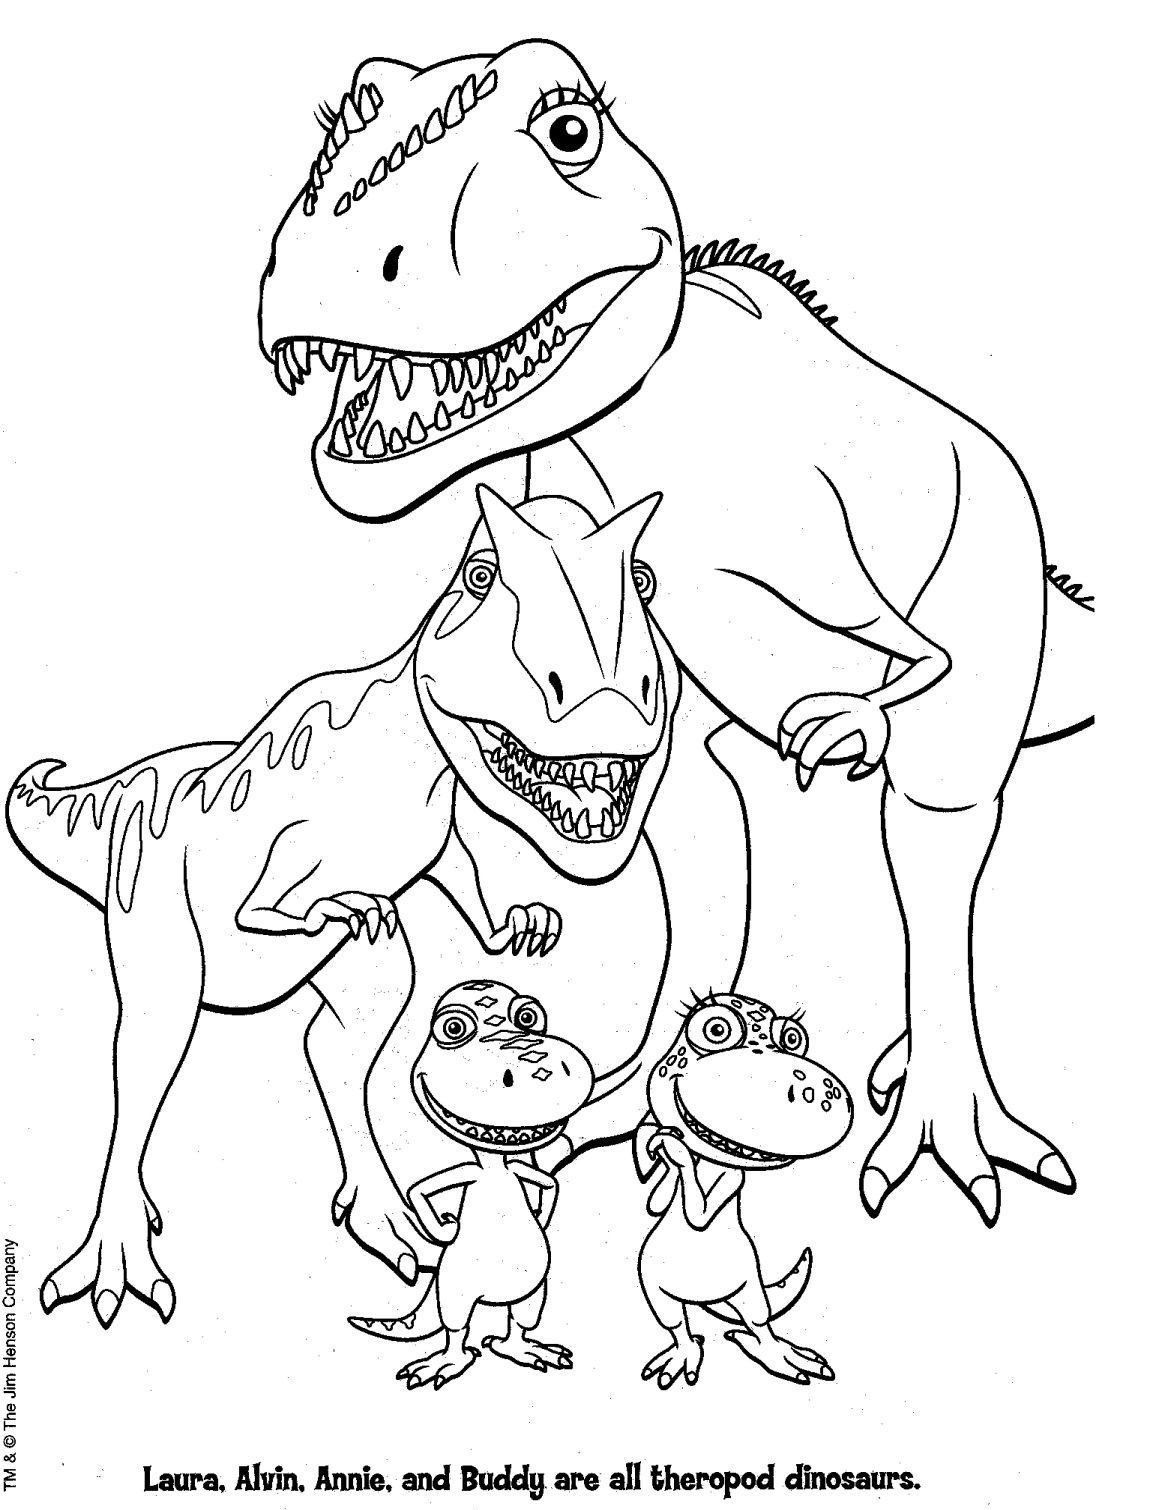 dino coloring page dinosaurs coloring pages collection free coloring sheets dino coloring page